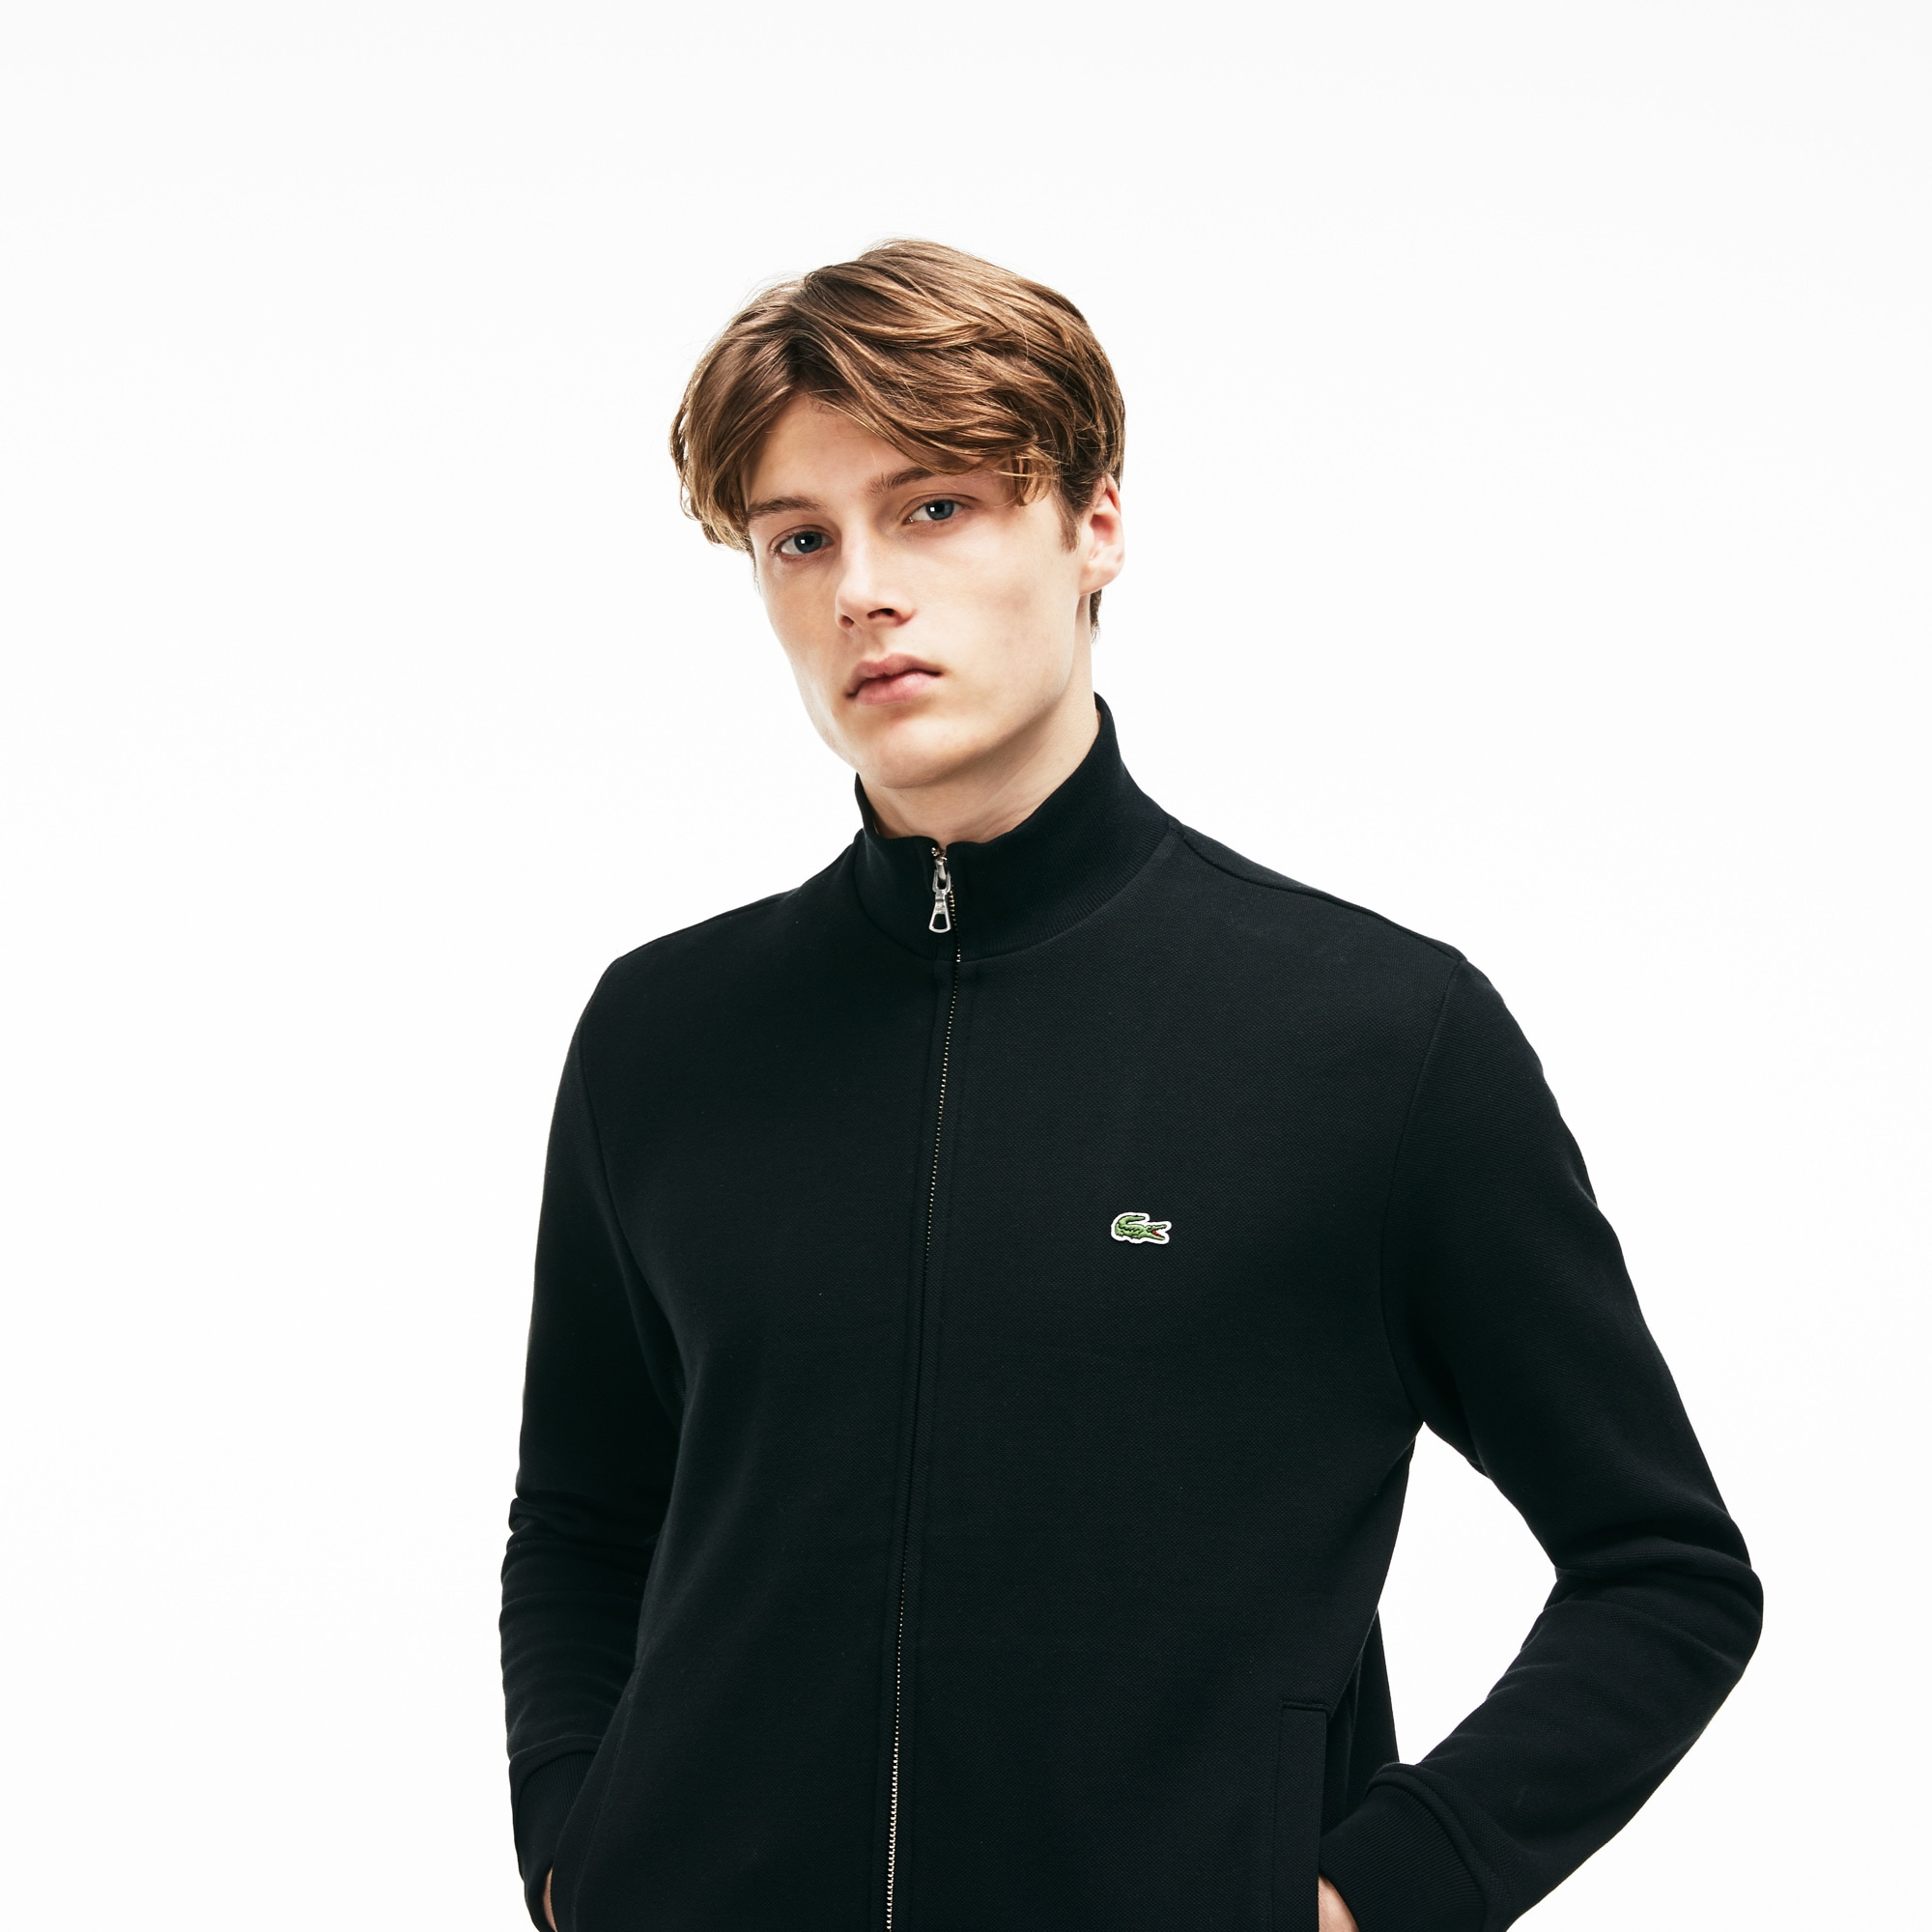 Men's Zip Stand-Up Collar Sweatshirt